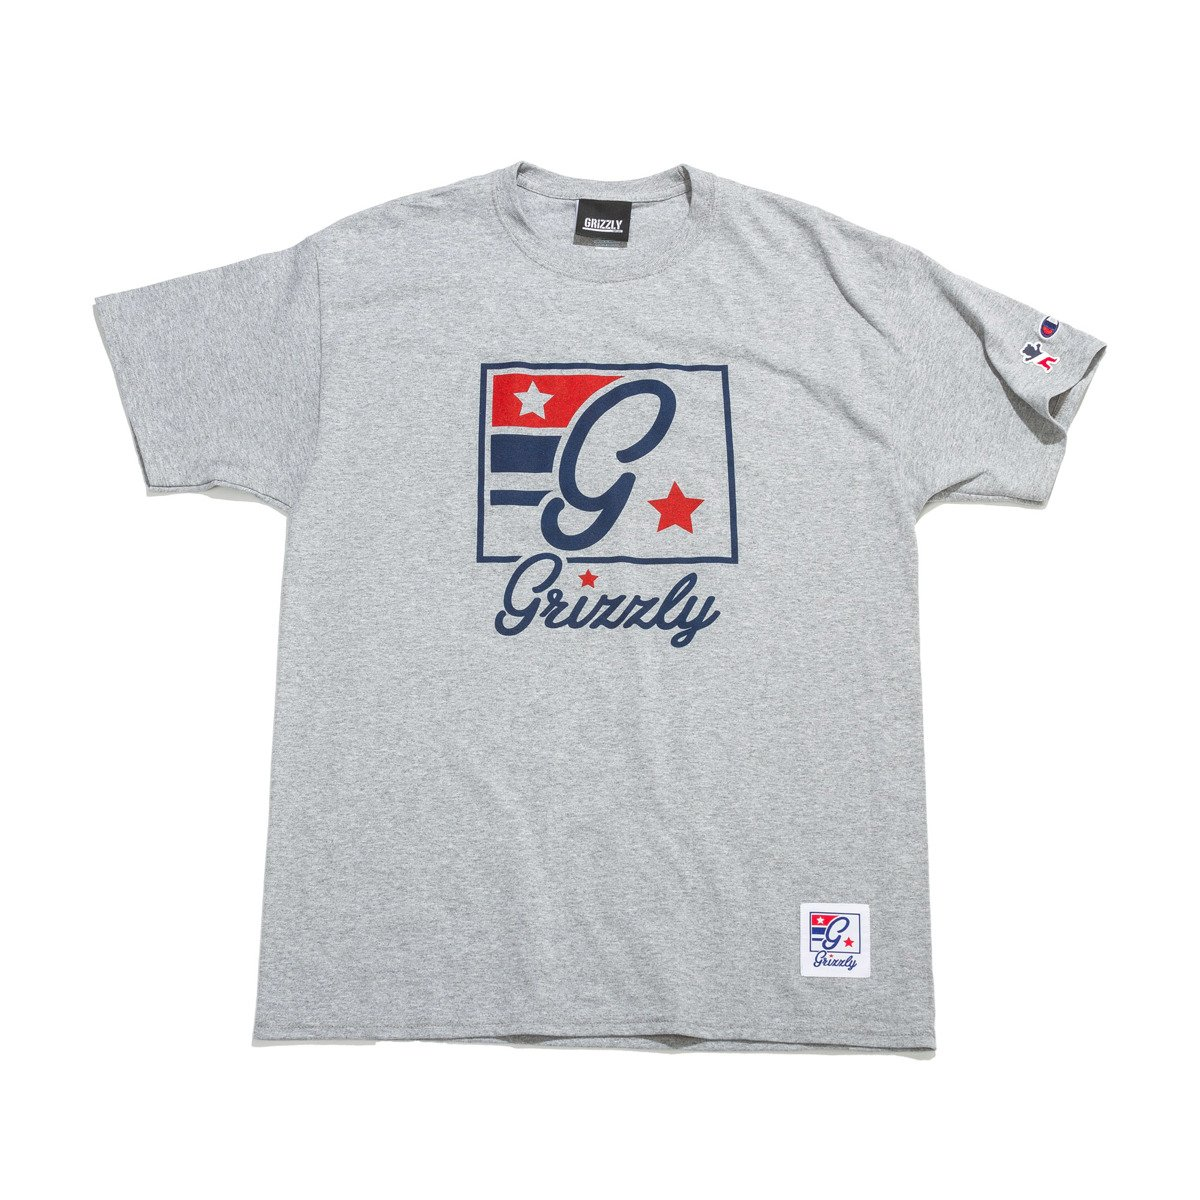 82574f14 champion x grizzly hardwood classic tee heather grey grey | Clothes \ T- shirts \ T-Shirts SALE \ Sale 50% -70% \ T-Shirts Brands \ Champion Odzież  ...